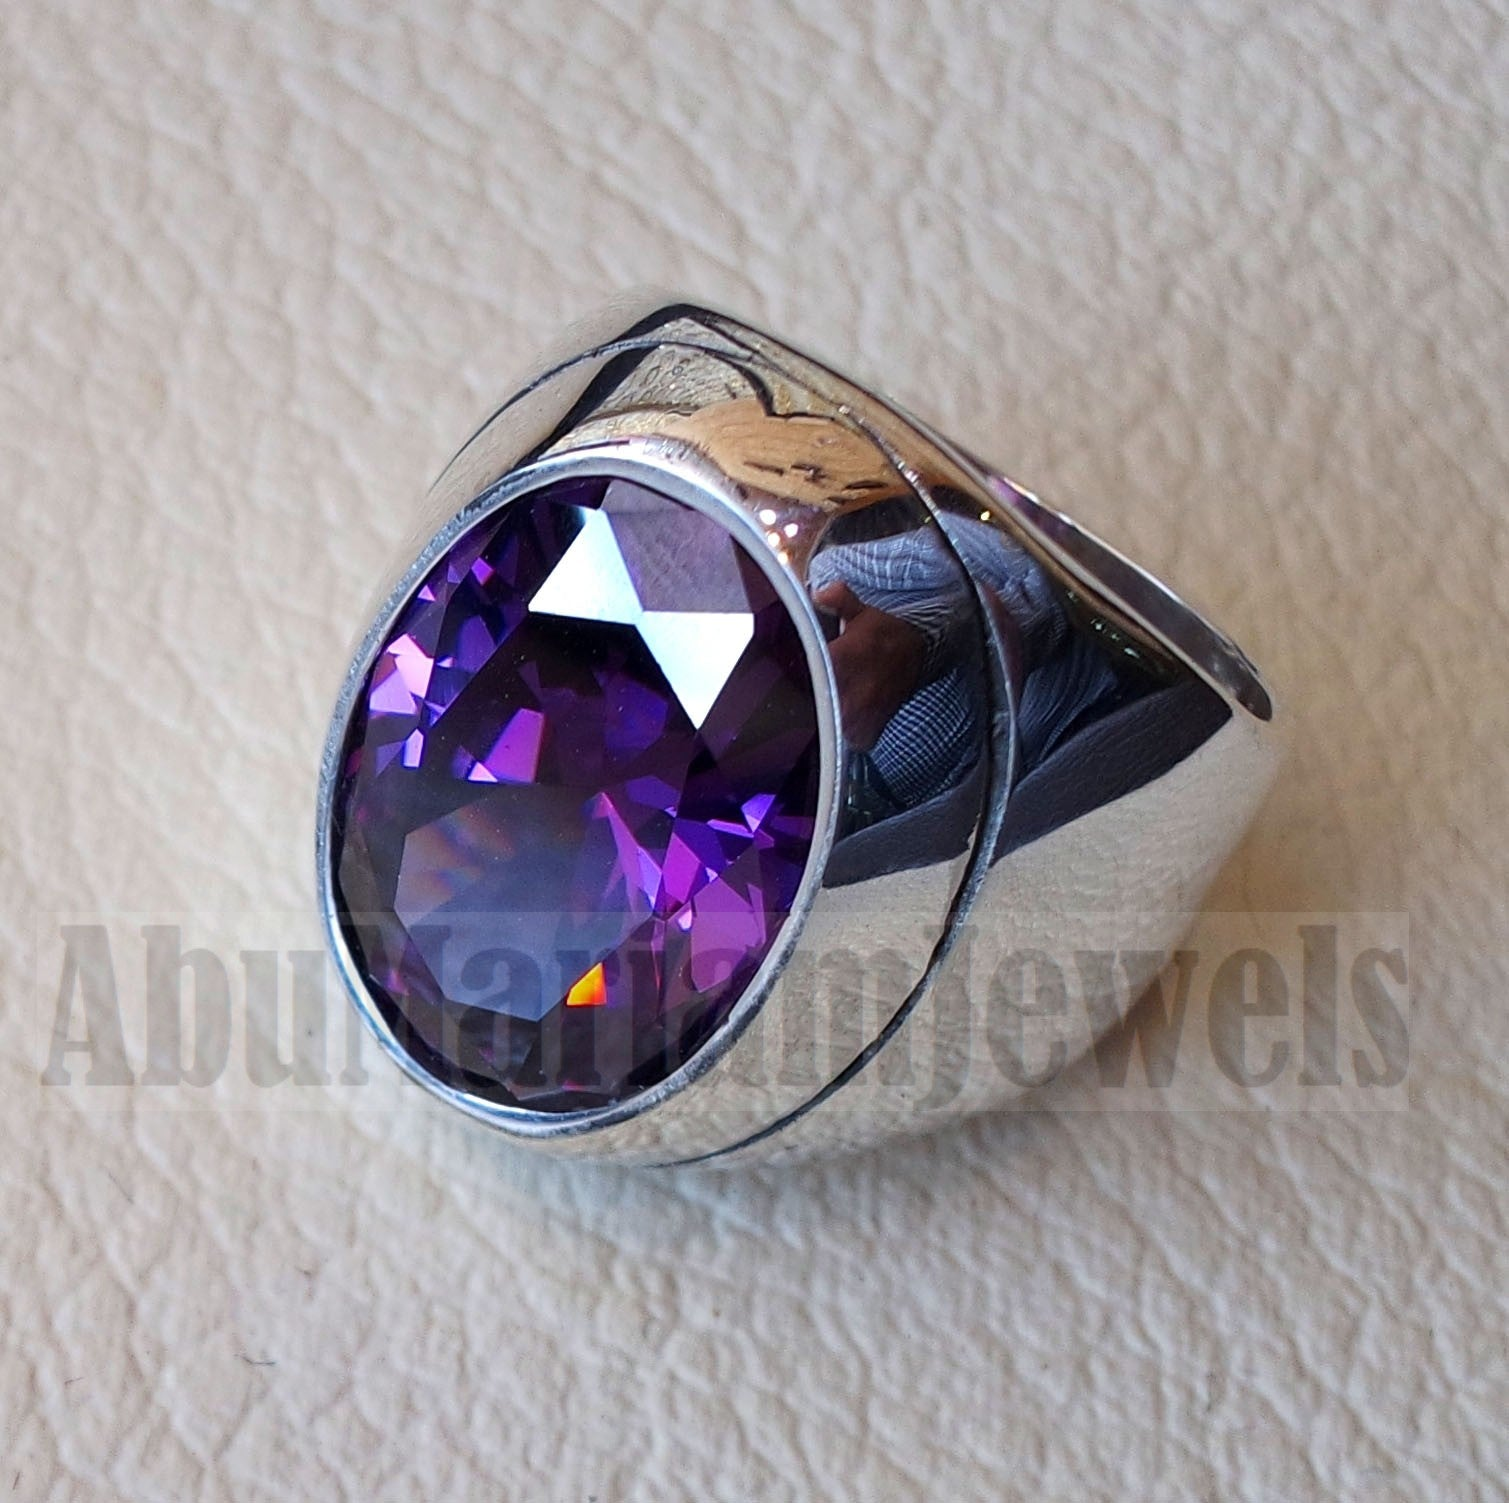 diamond synthetic stone high quality lavender purple amethyst color cubic zircon huge men ring sterling silver 925 any size heavy jewelry